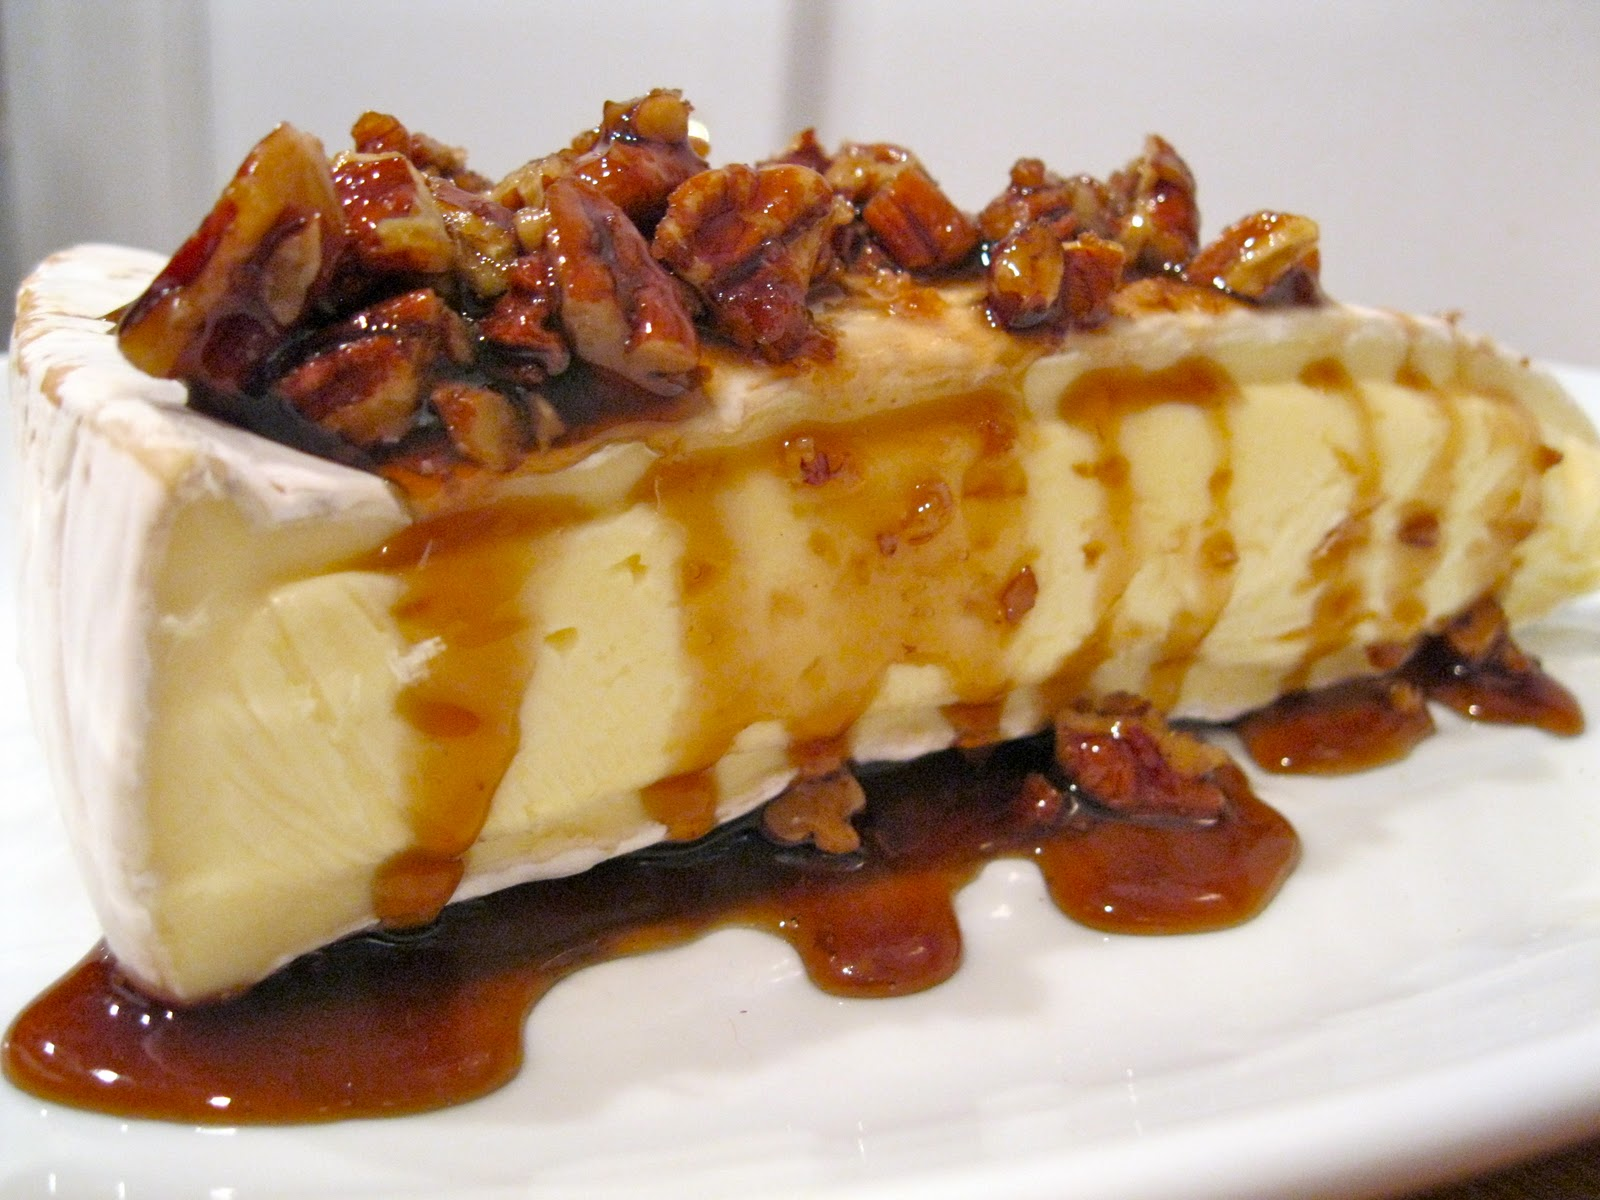 rum maple and pecan topped brie 8 oz wedge of brie cheese 3 t dark rum ...